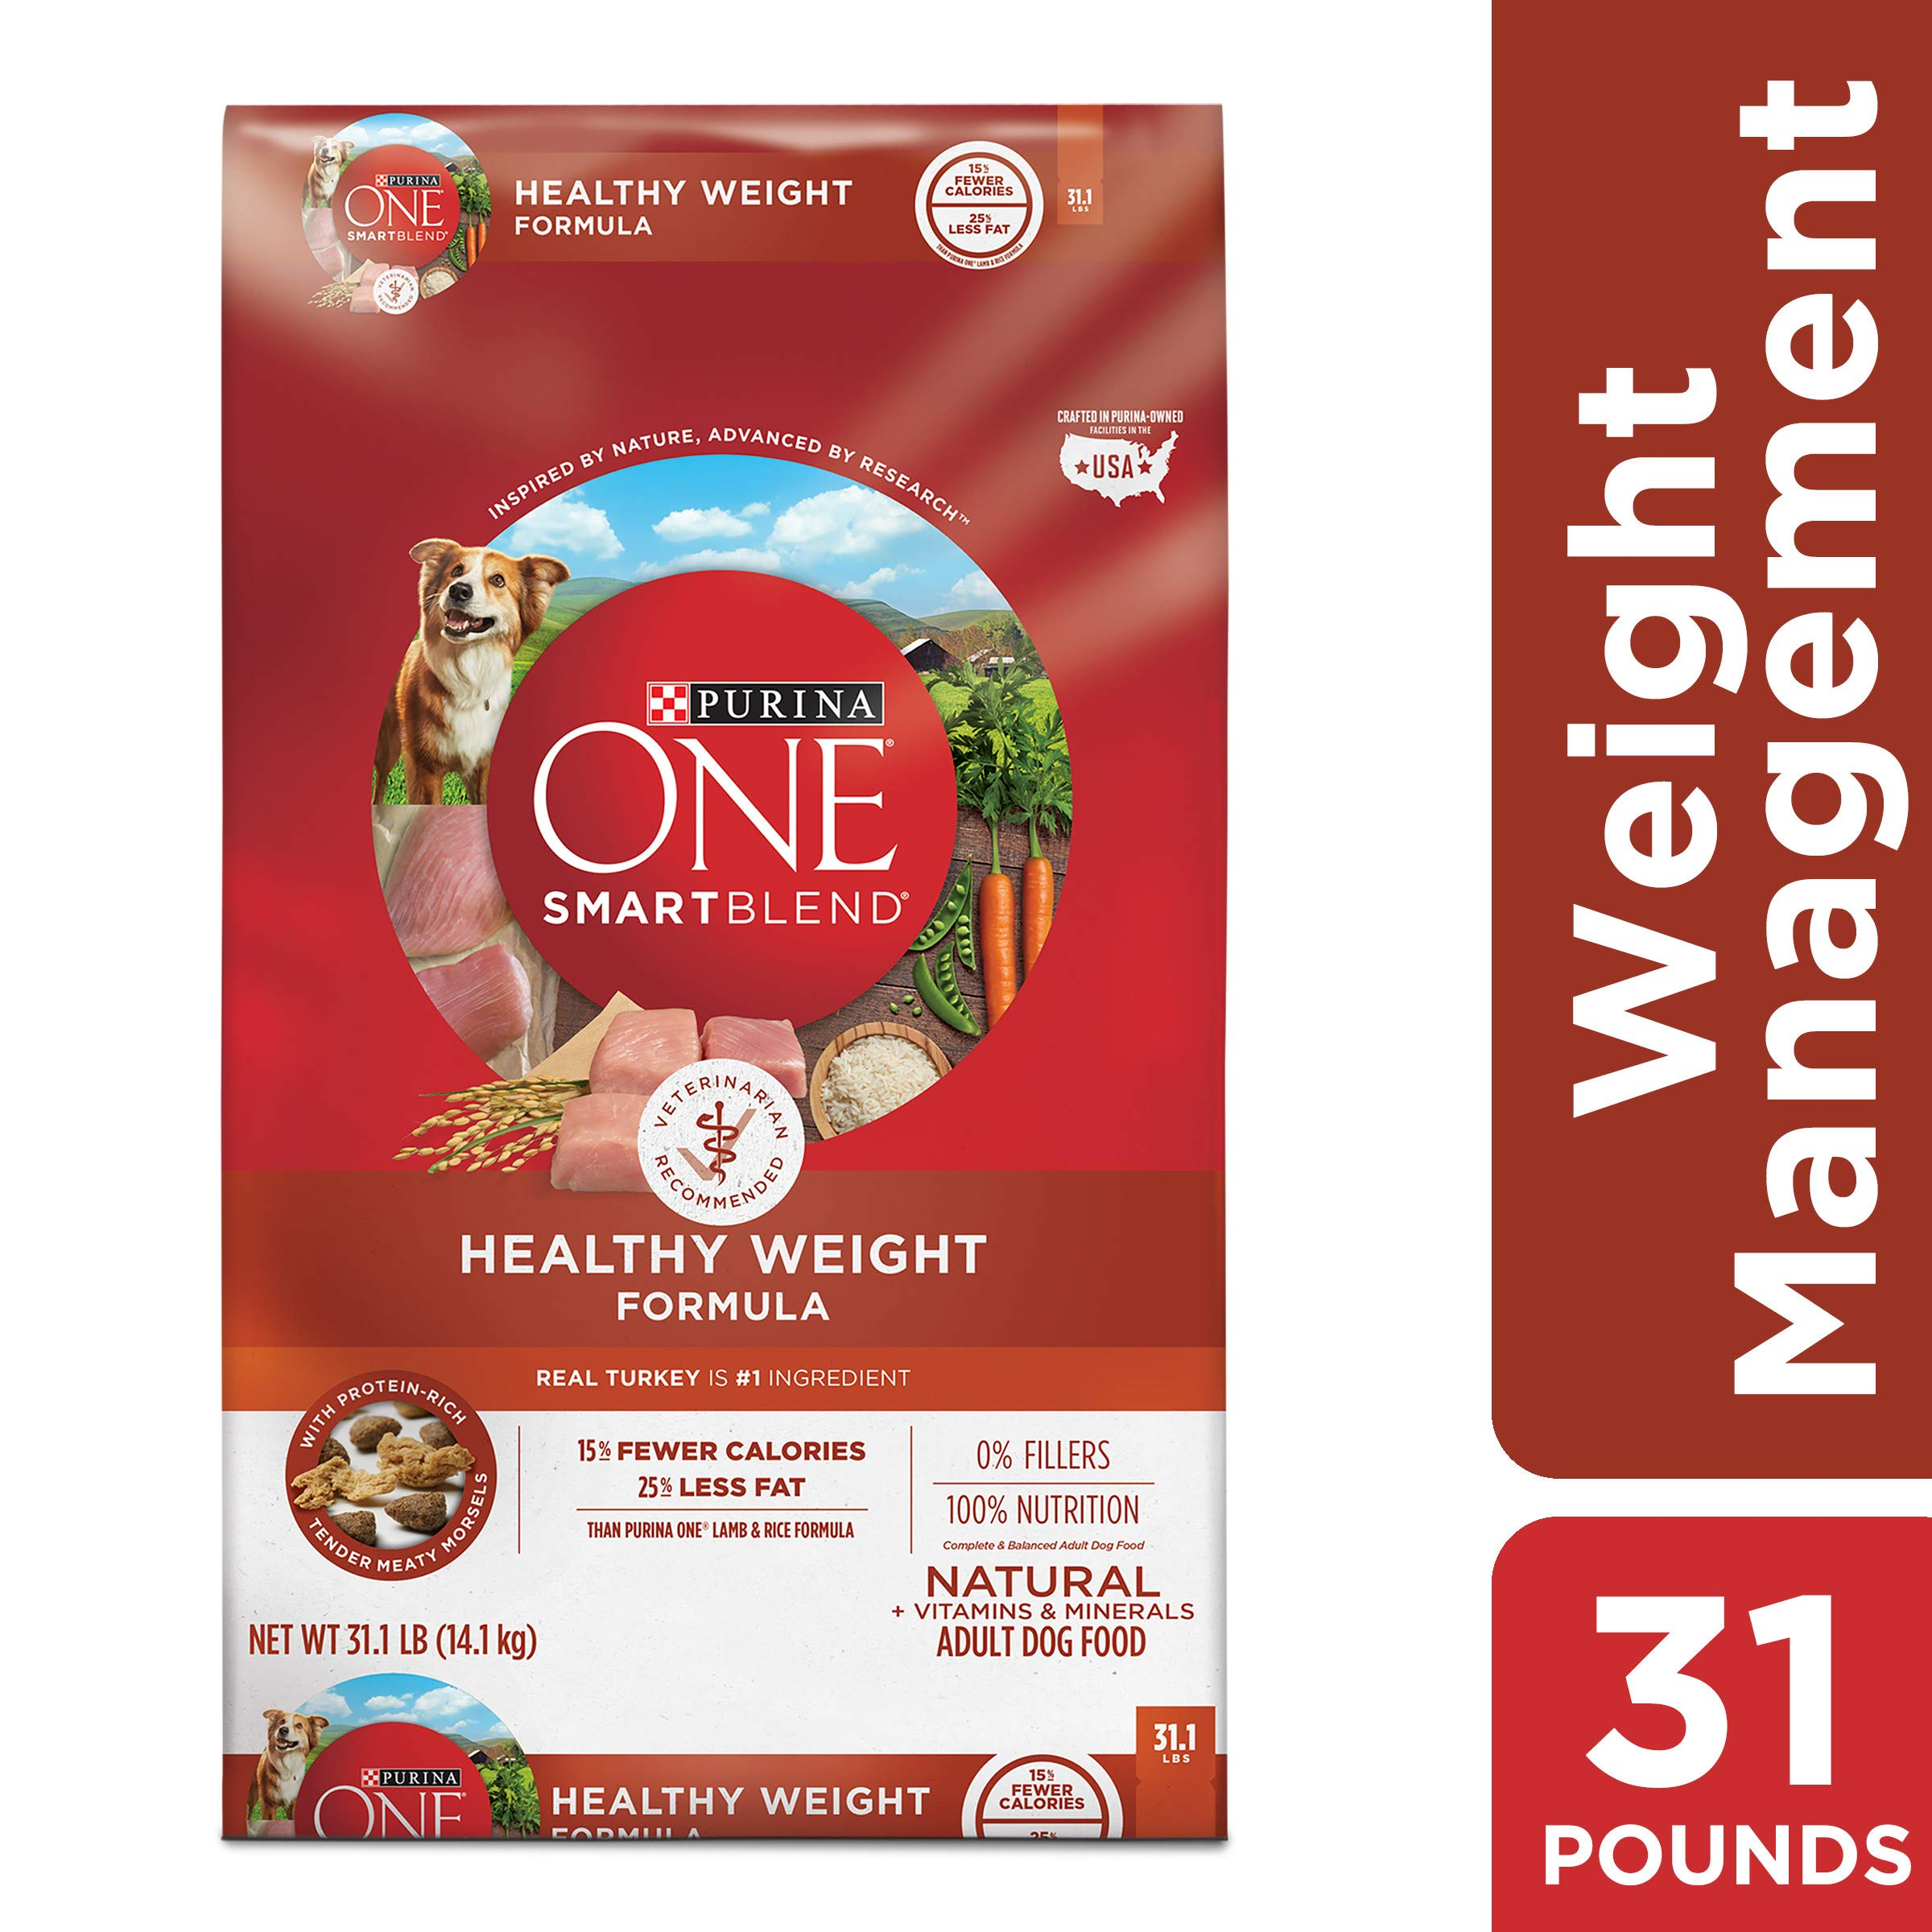 Purina ONE Weight Management, Natural Dry Dog Food, SmartBlend Healthy Weight Formula - 31.1 lb. Bag by Purina ONE